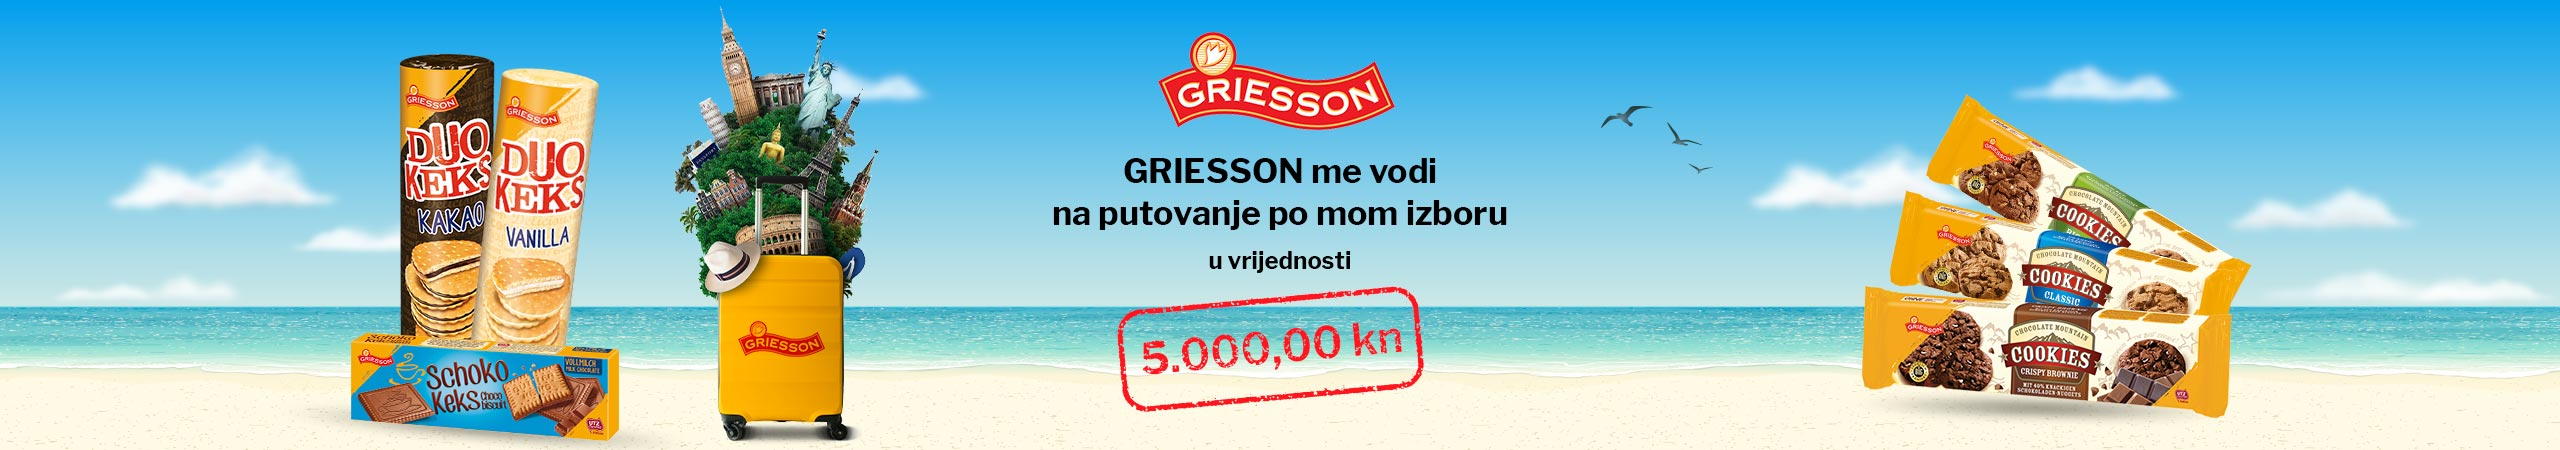 Griesson_2560x450